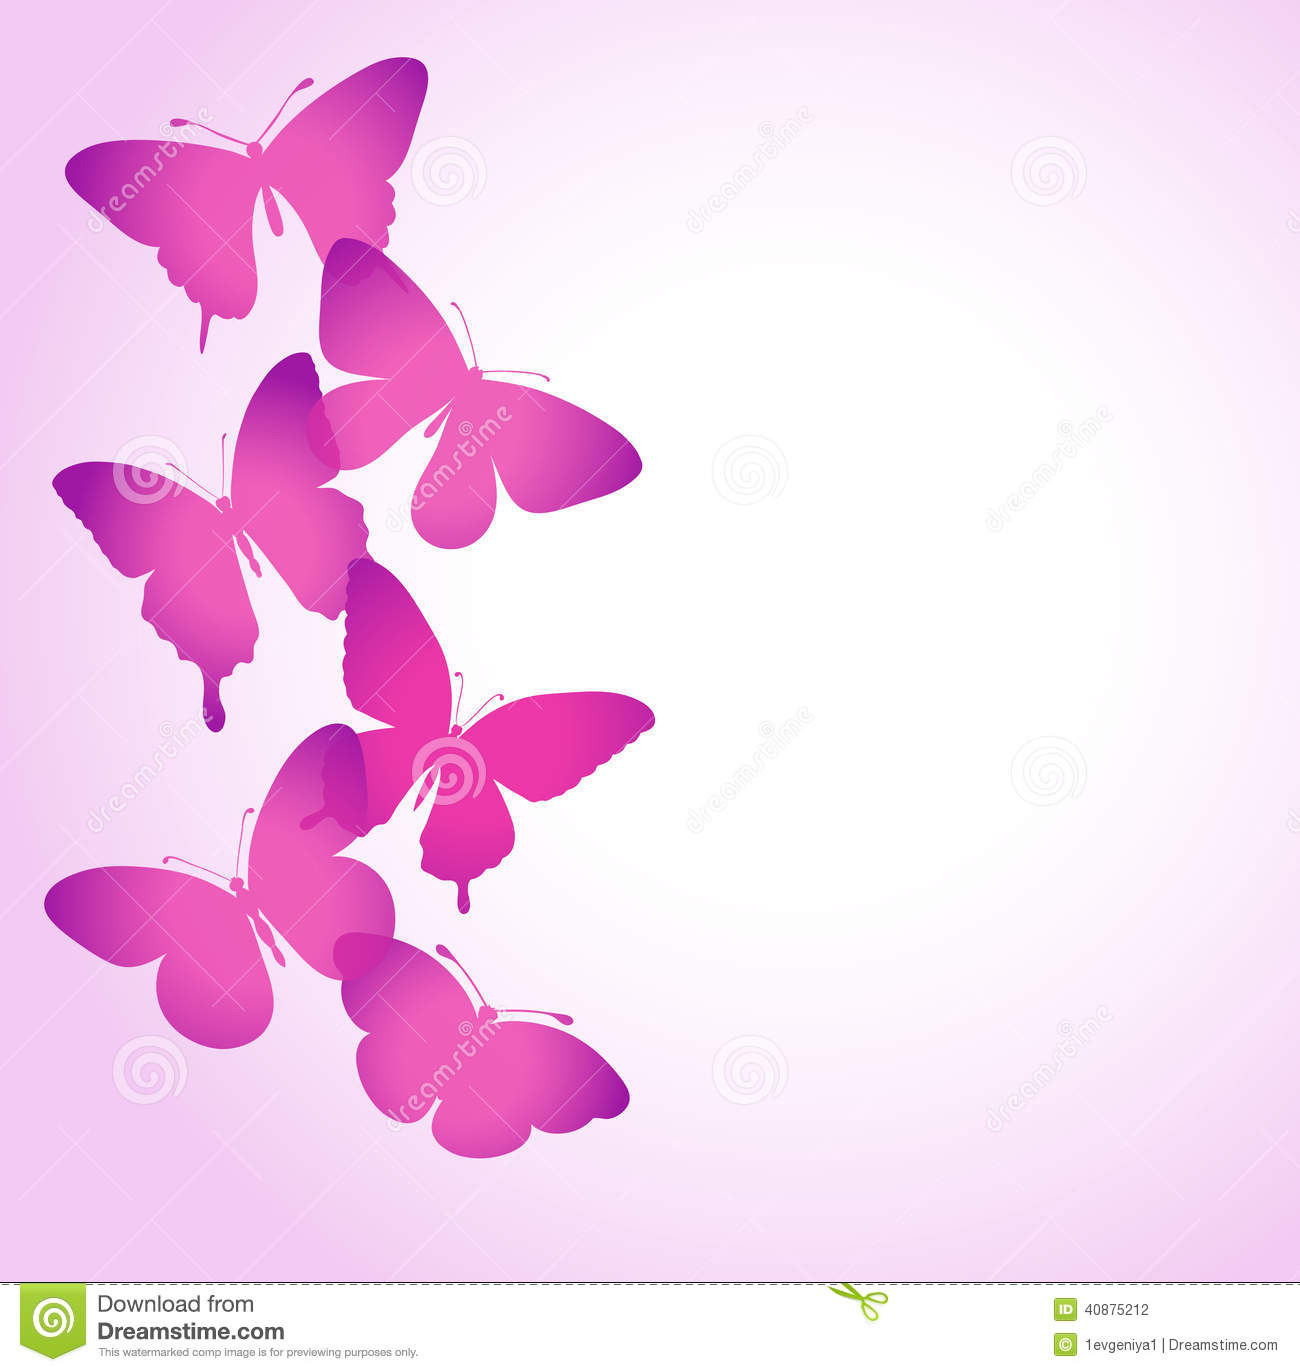 borders for birthday greeting cards ; background-border-butterflies-flying-perfect-greeting-cards-invitations-wedding-birthday-40875212